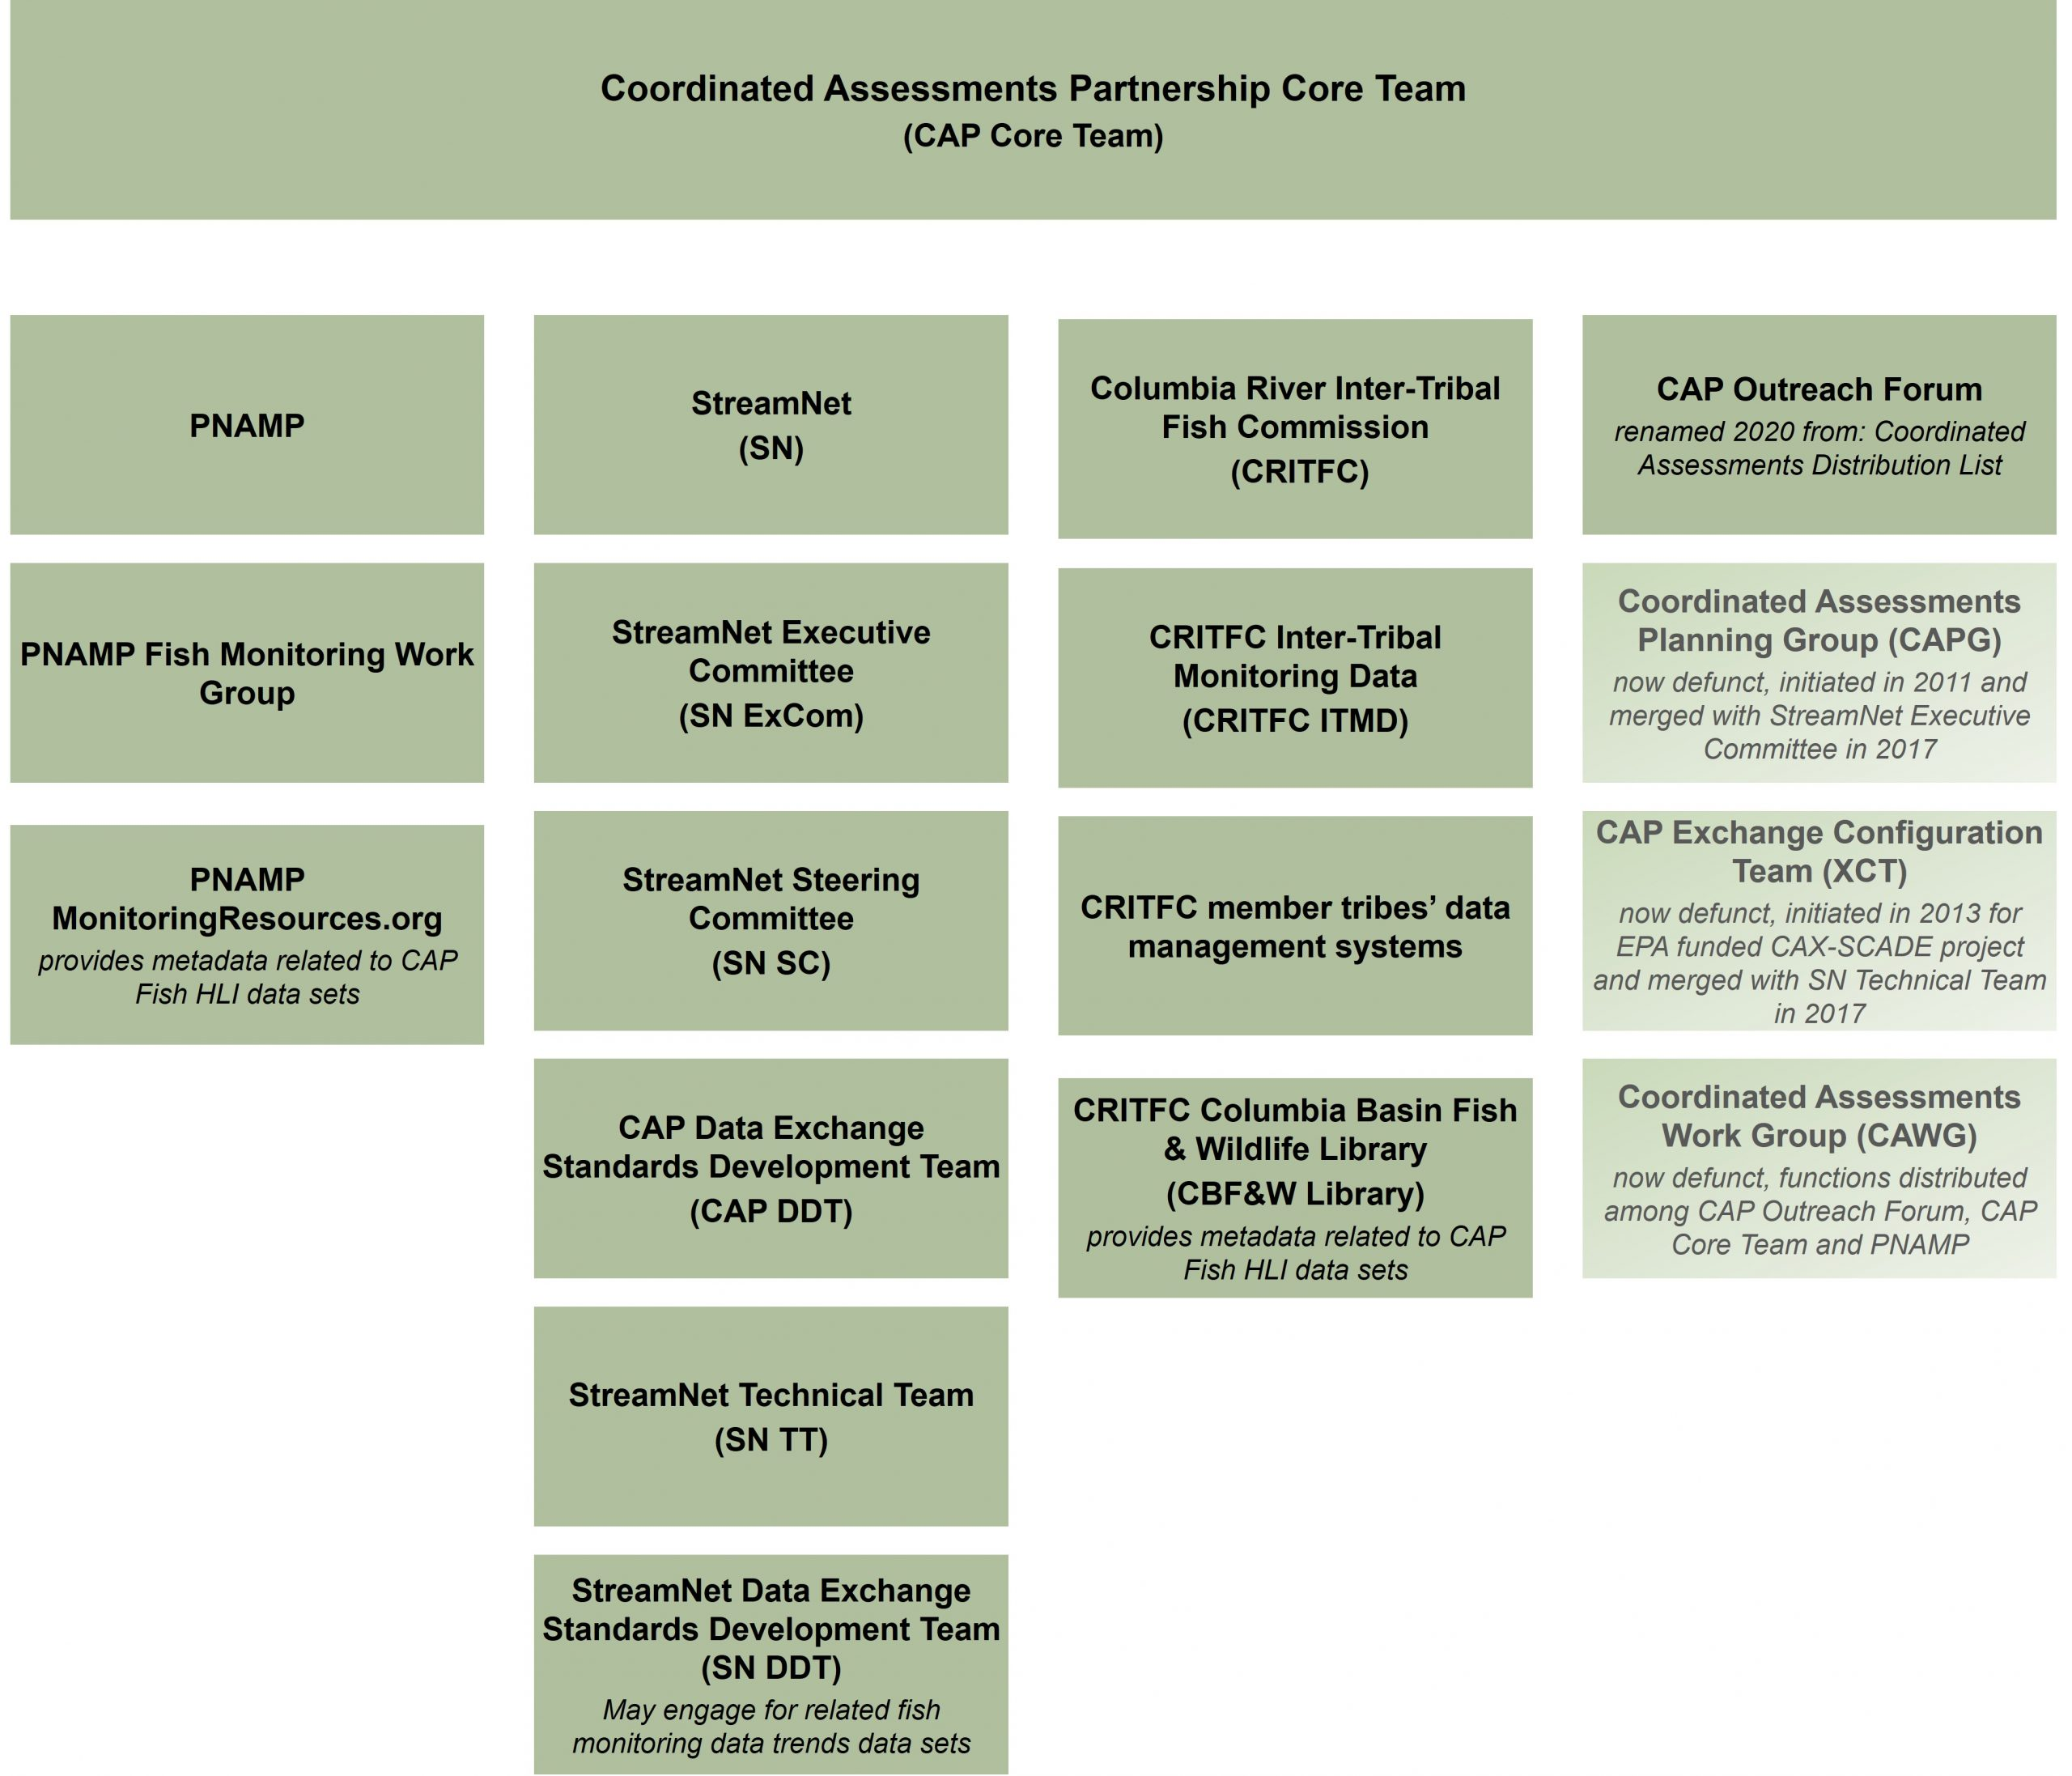 This figures depicts the 15 active groups and the 3 defunct groups that contribute to the implementation of CAP. The active groups are described in the text on this page. The 3 defunct group are Coordinated Assessments Planning Group (CAPG) That was merged in 2017 with the StreamNet Executive Committee, The CAP Exchange Configuration Team (XCT) that was merged with the StreamNet Technical Team in 2017, and the Coordinated Assessments Work Group (CAWG) whose functions were distributed among the CAP Outreach Forum, CAP Core Team, and PNAMP..